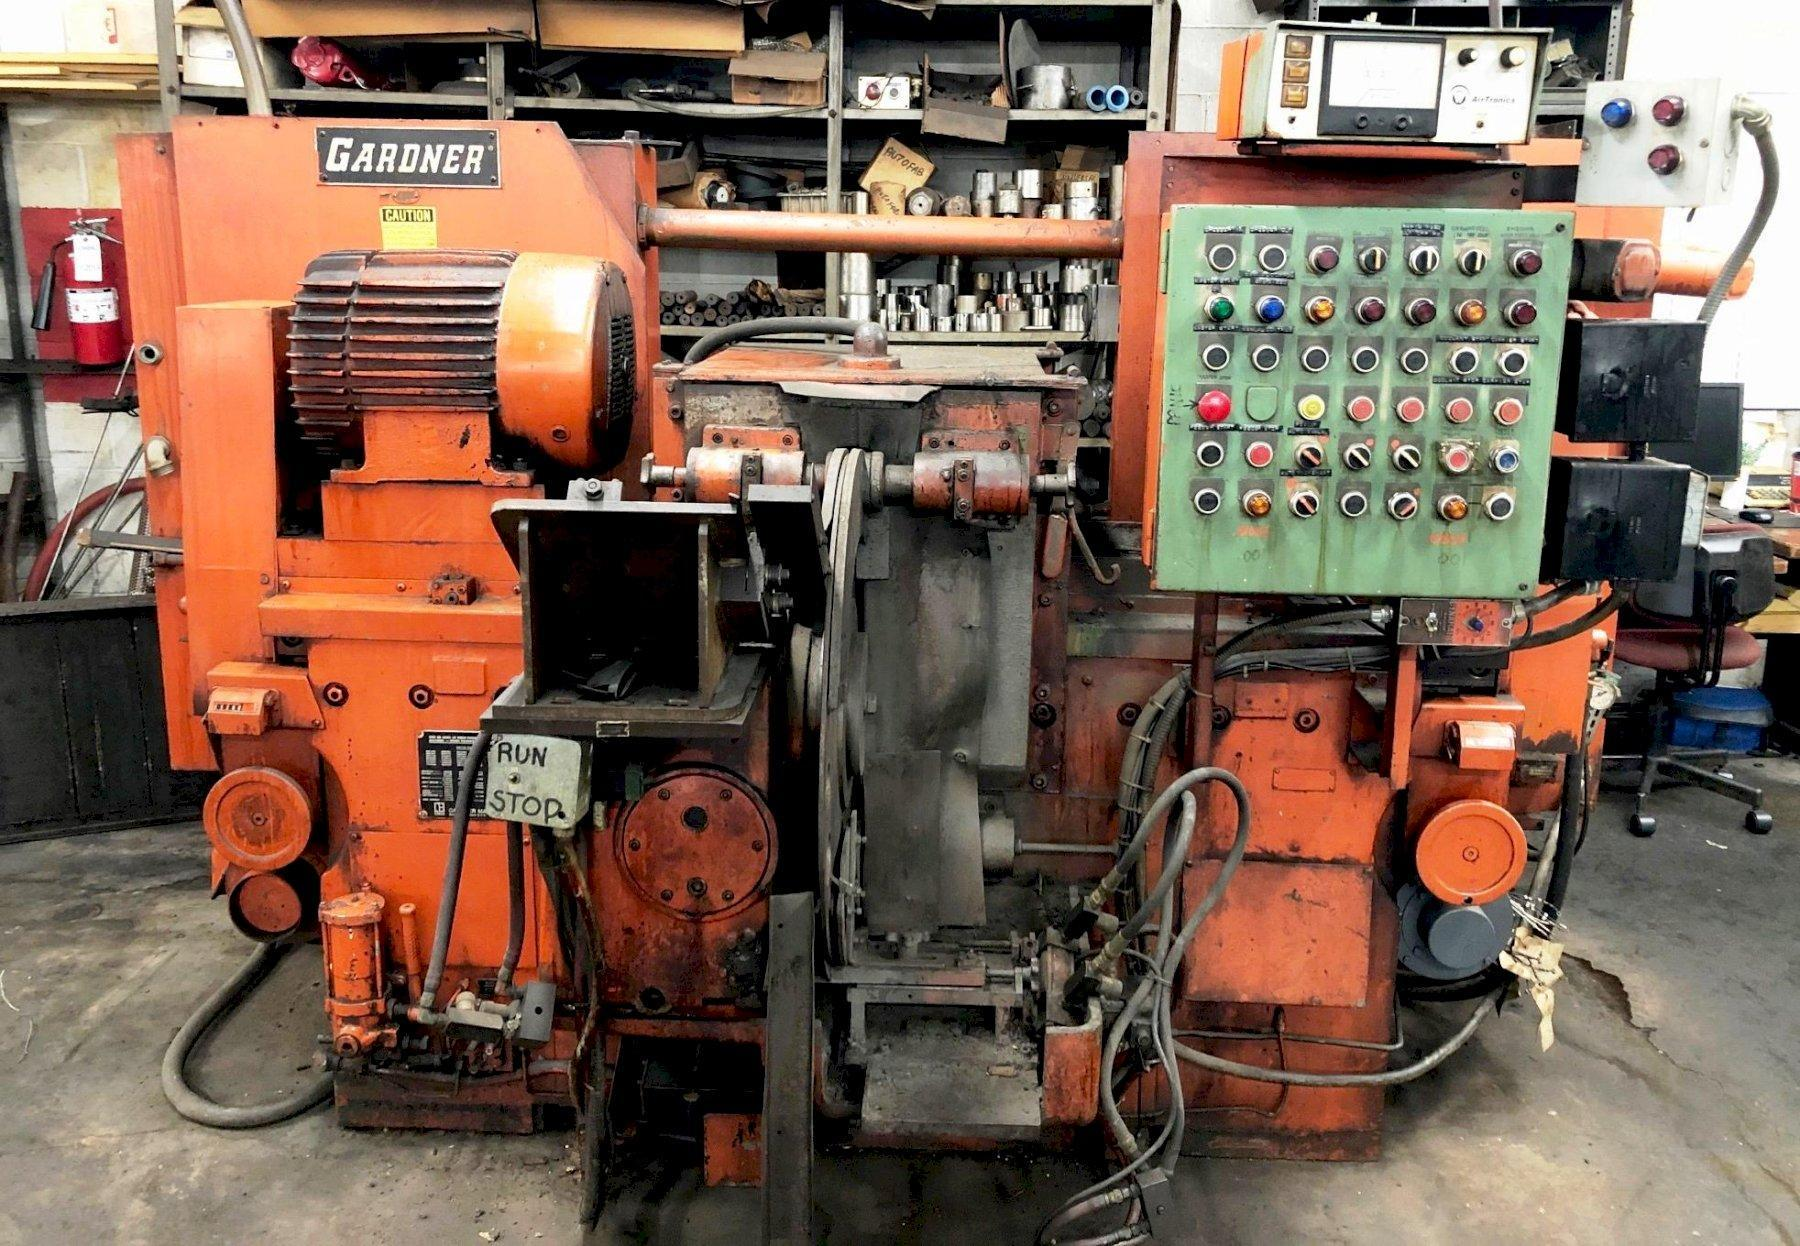 Gardner Horizontal Double Disc Grinder Model SDG 223